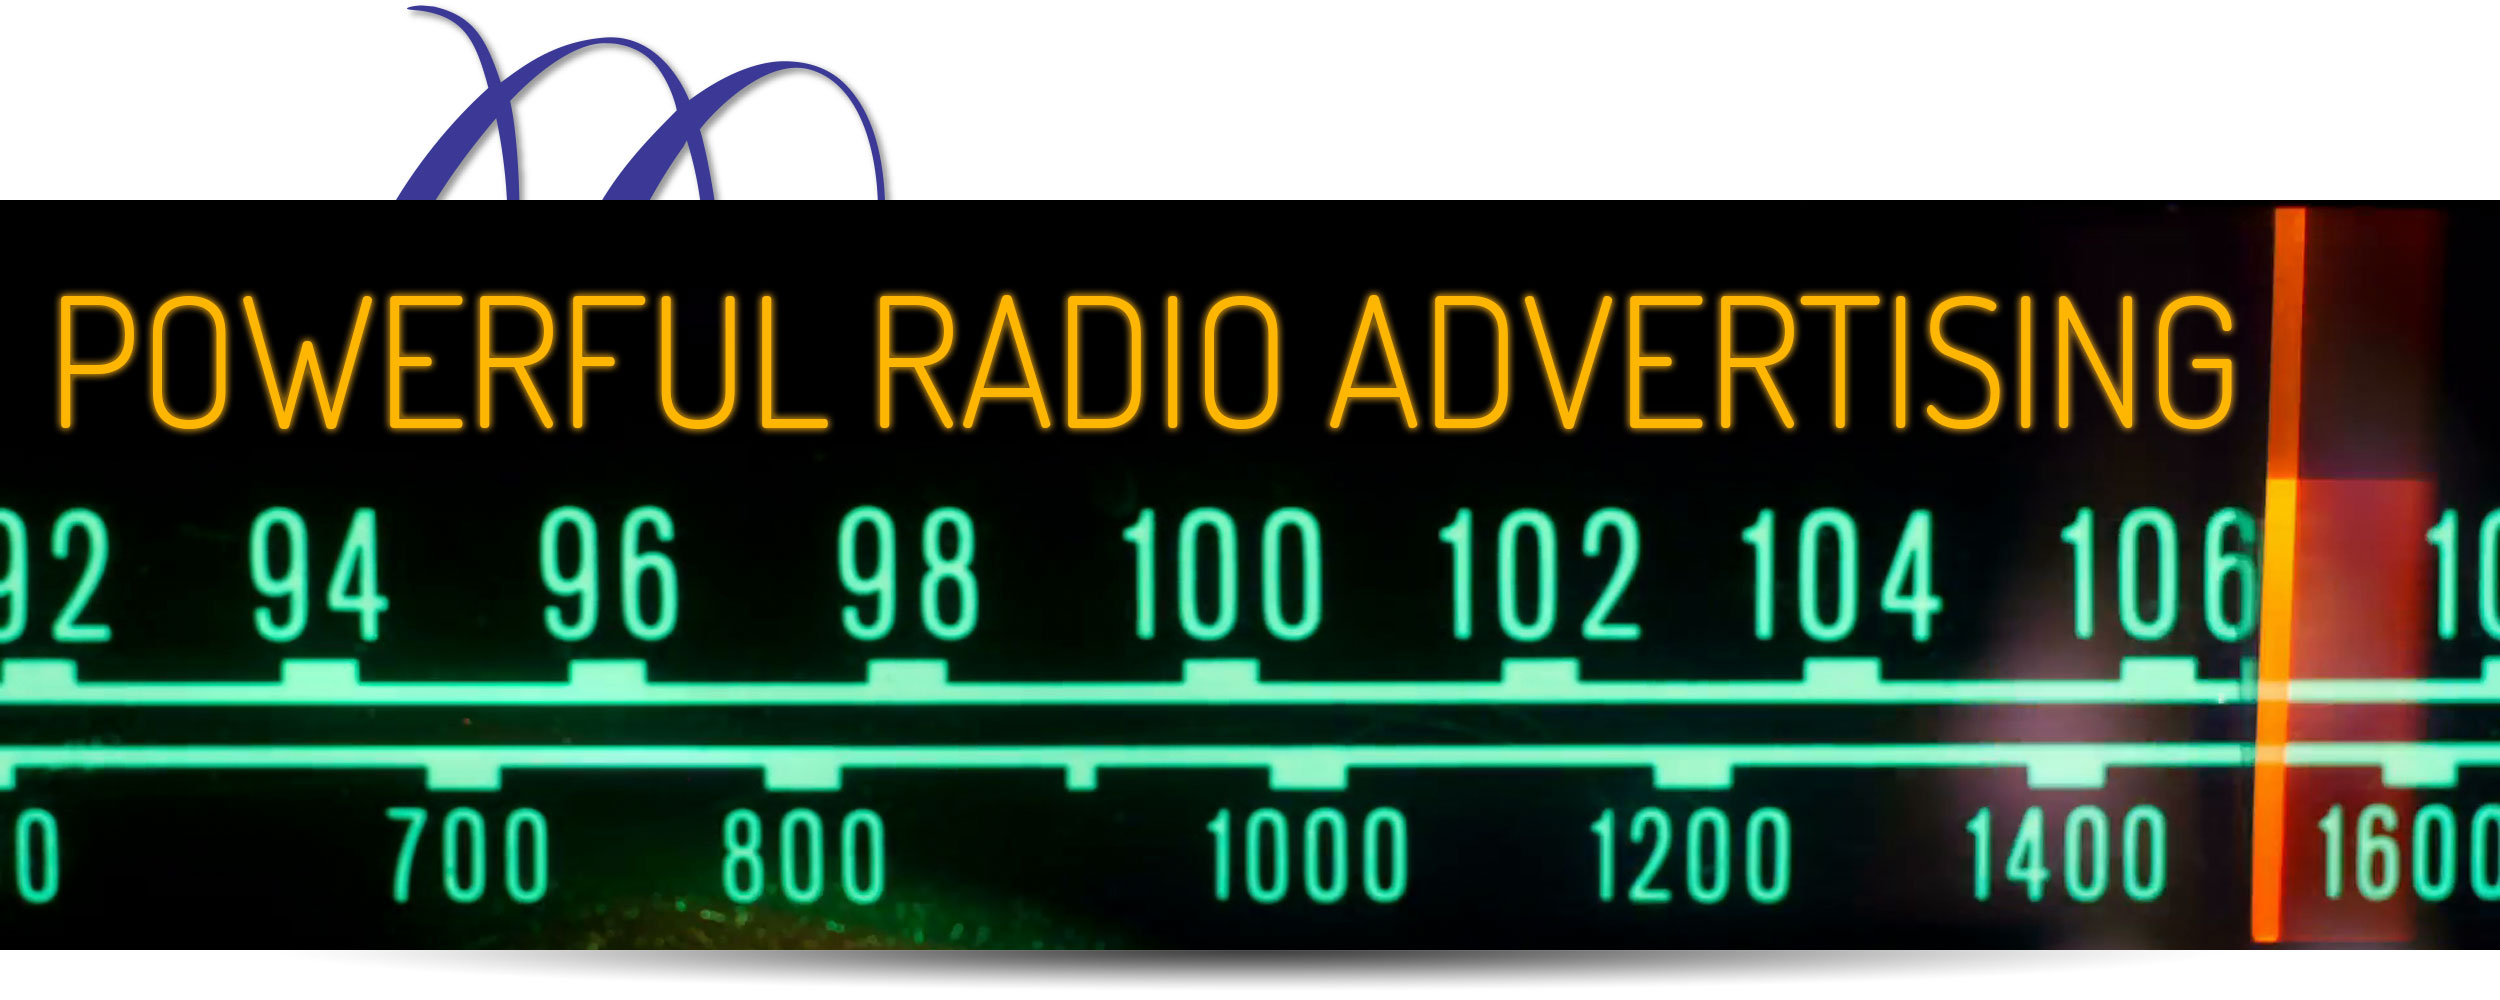 Powerful Radio Advertising